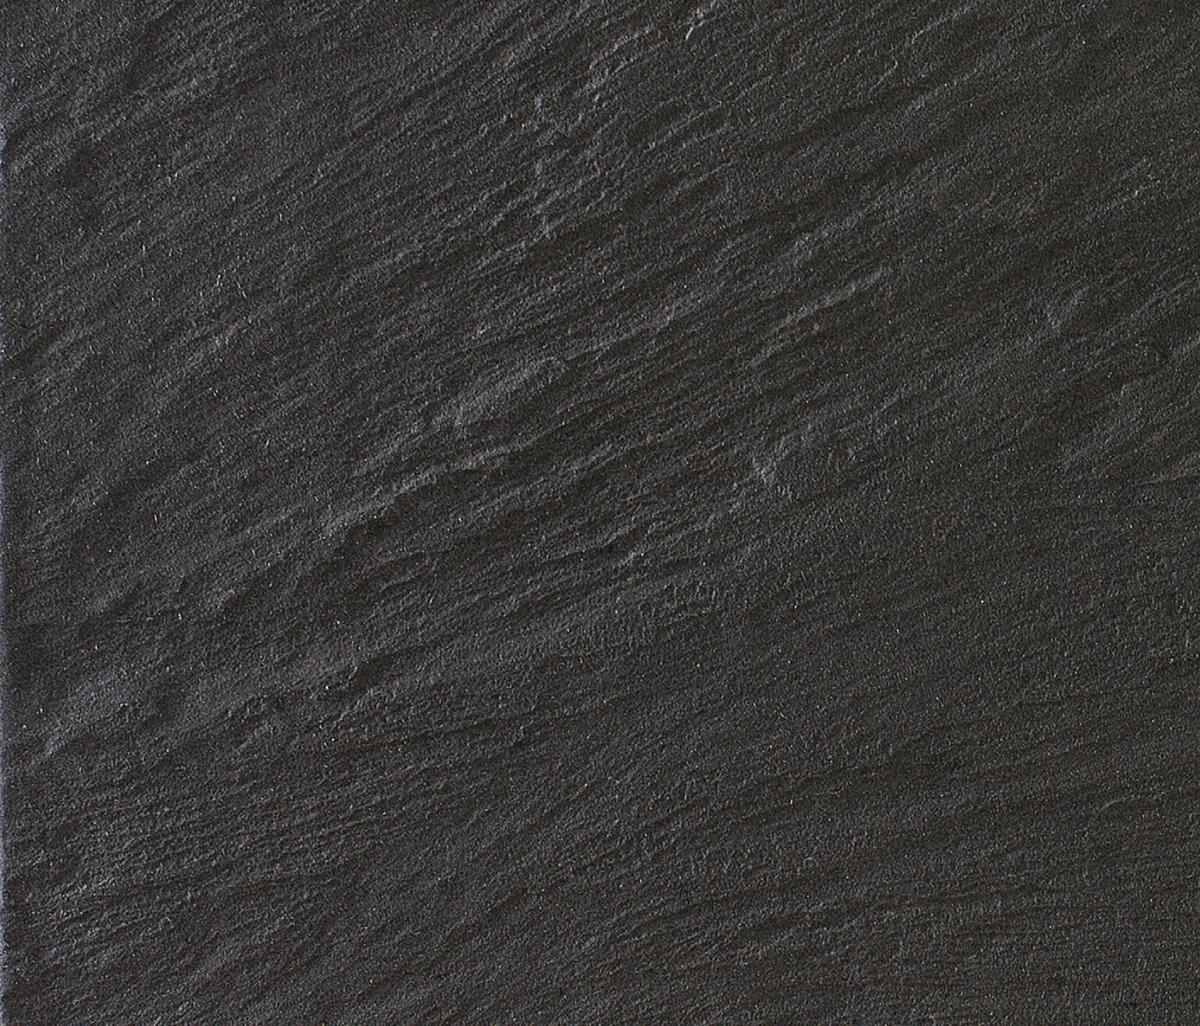 Black Slate Flooring: ARCHGRES BLACK SLATE - Tiles From Terratinta Ceramiche